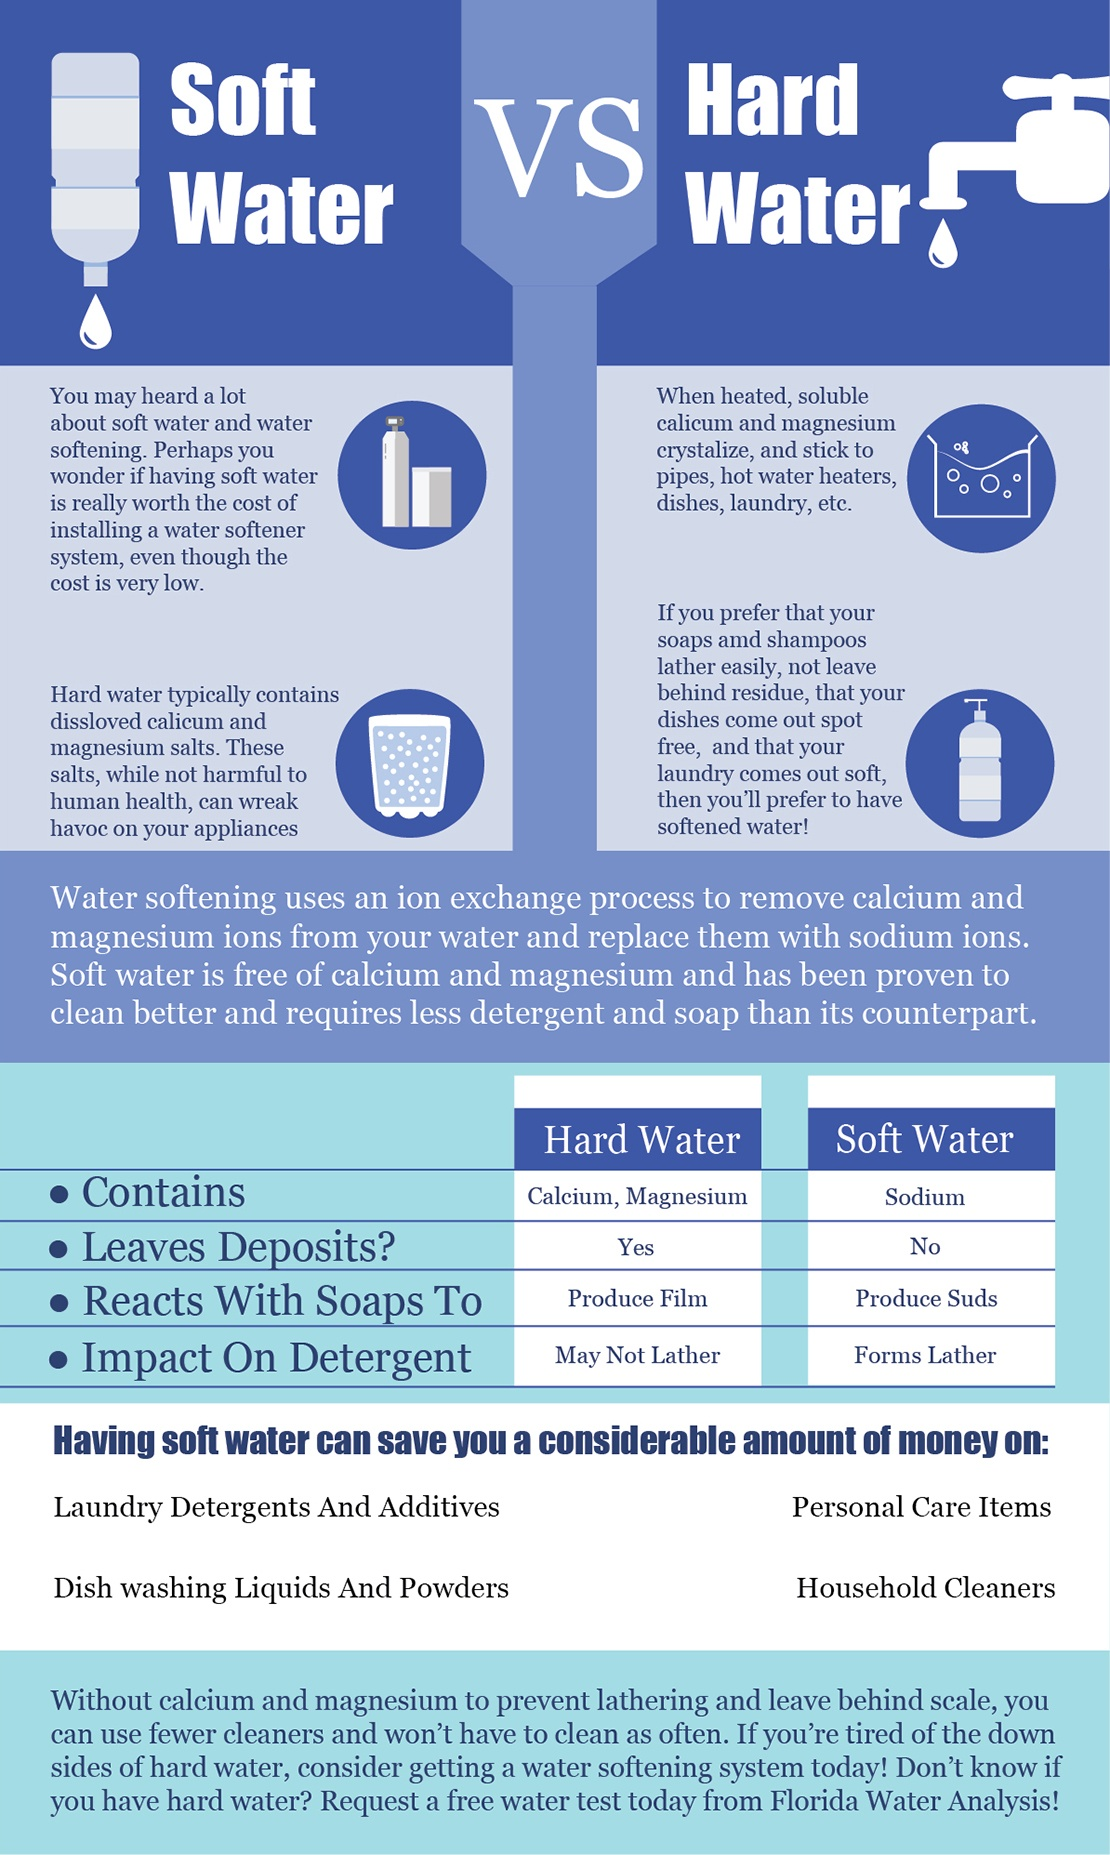 hard water vs soft water infographic